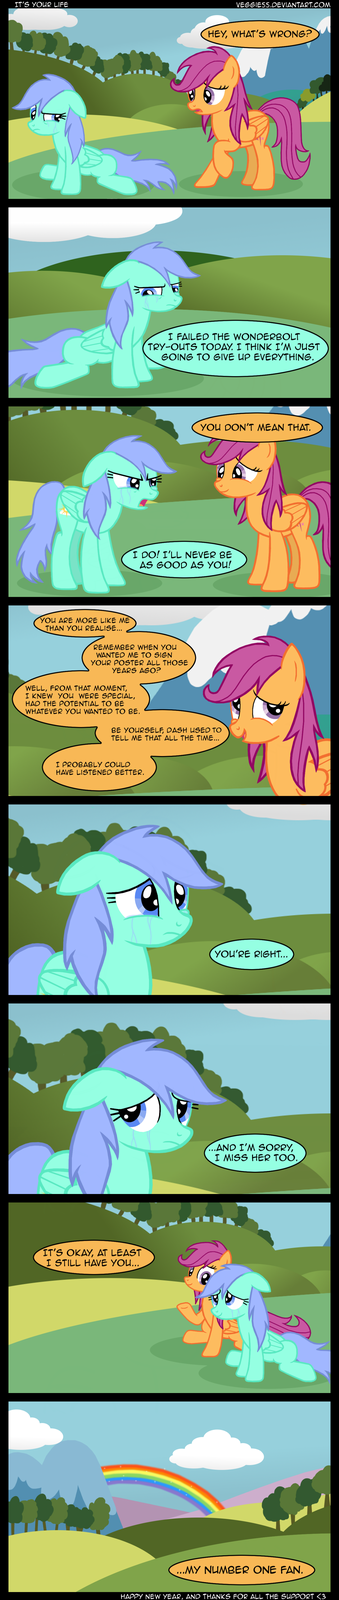 it__s_your_life_by_veggie55-d4ktrqh.png